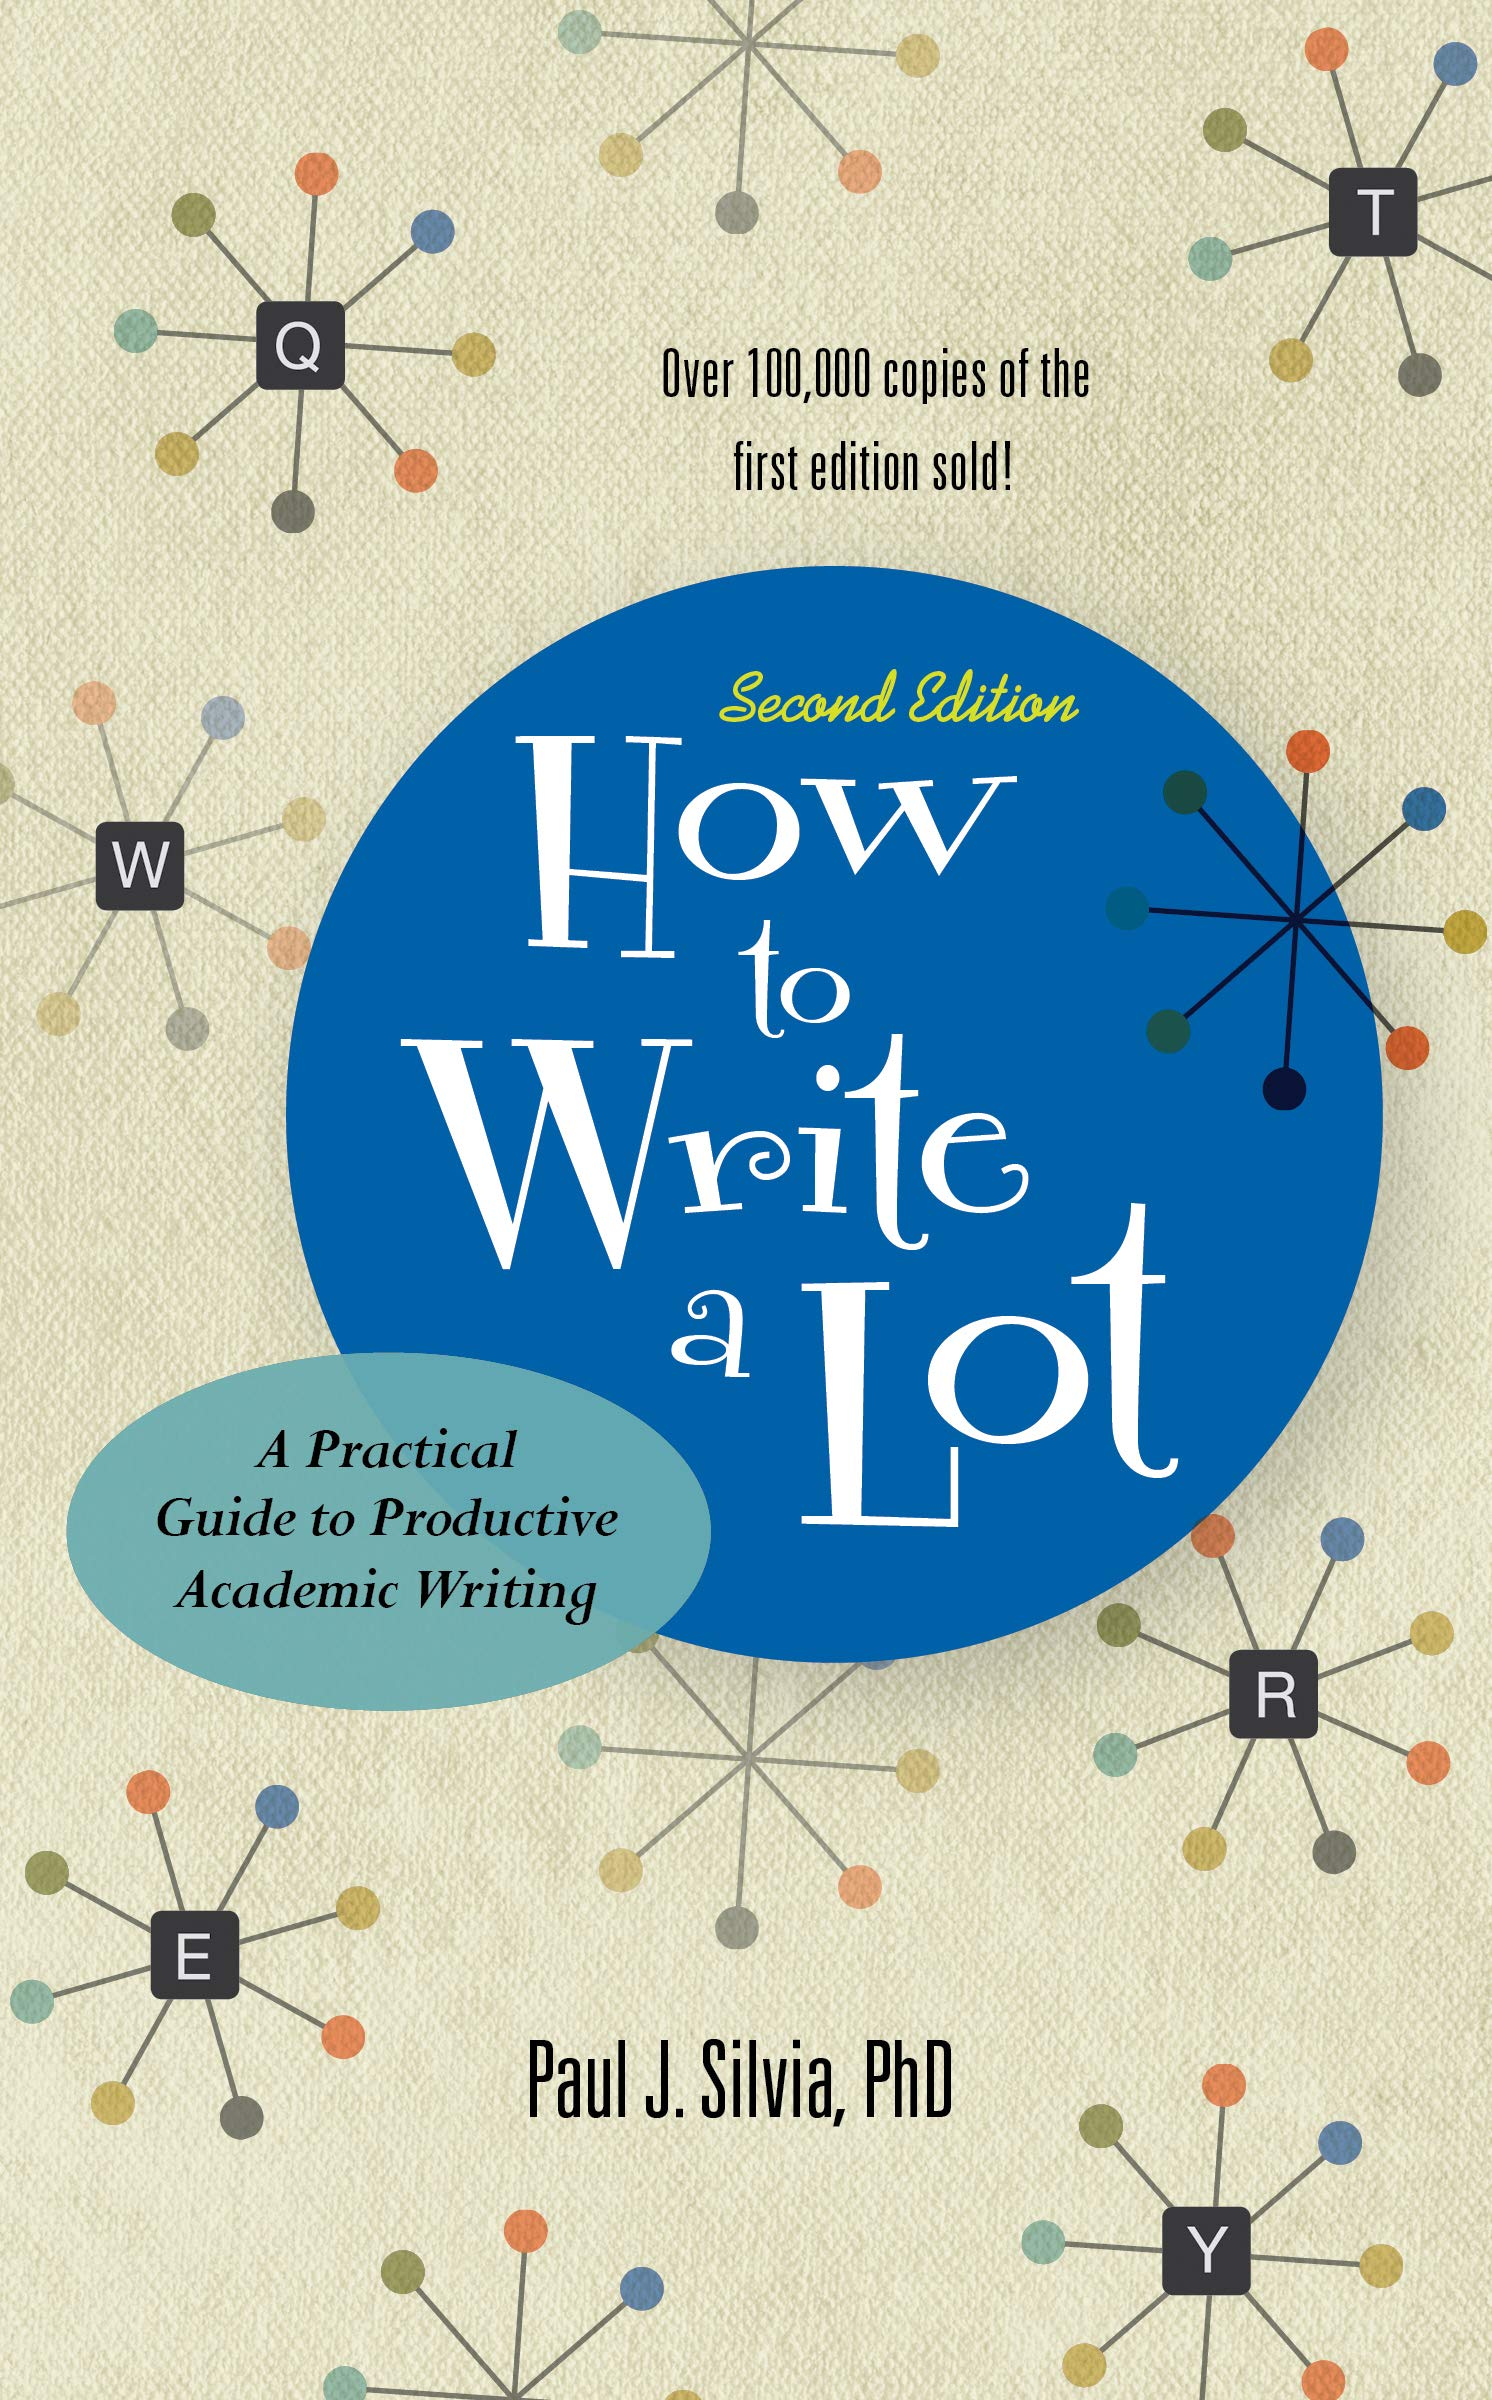 How to Write a Lot: A Practical Guide to Productive Academic